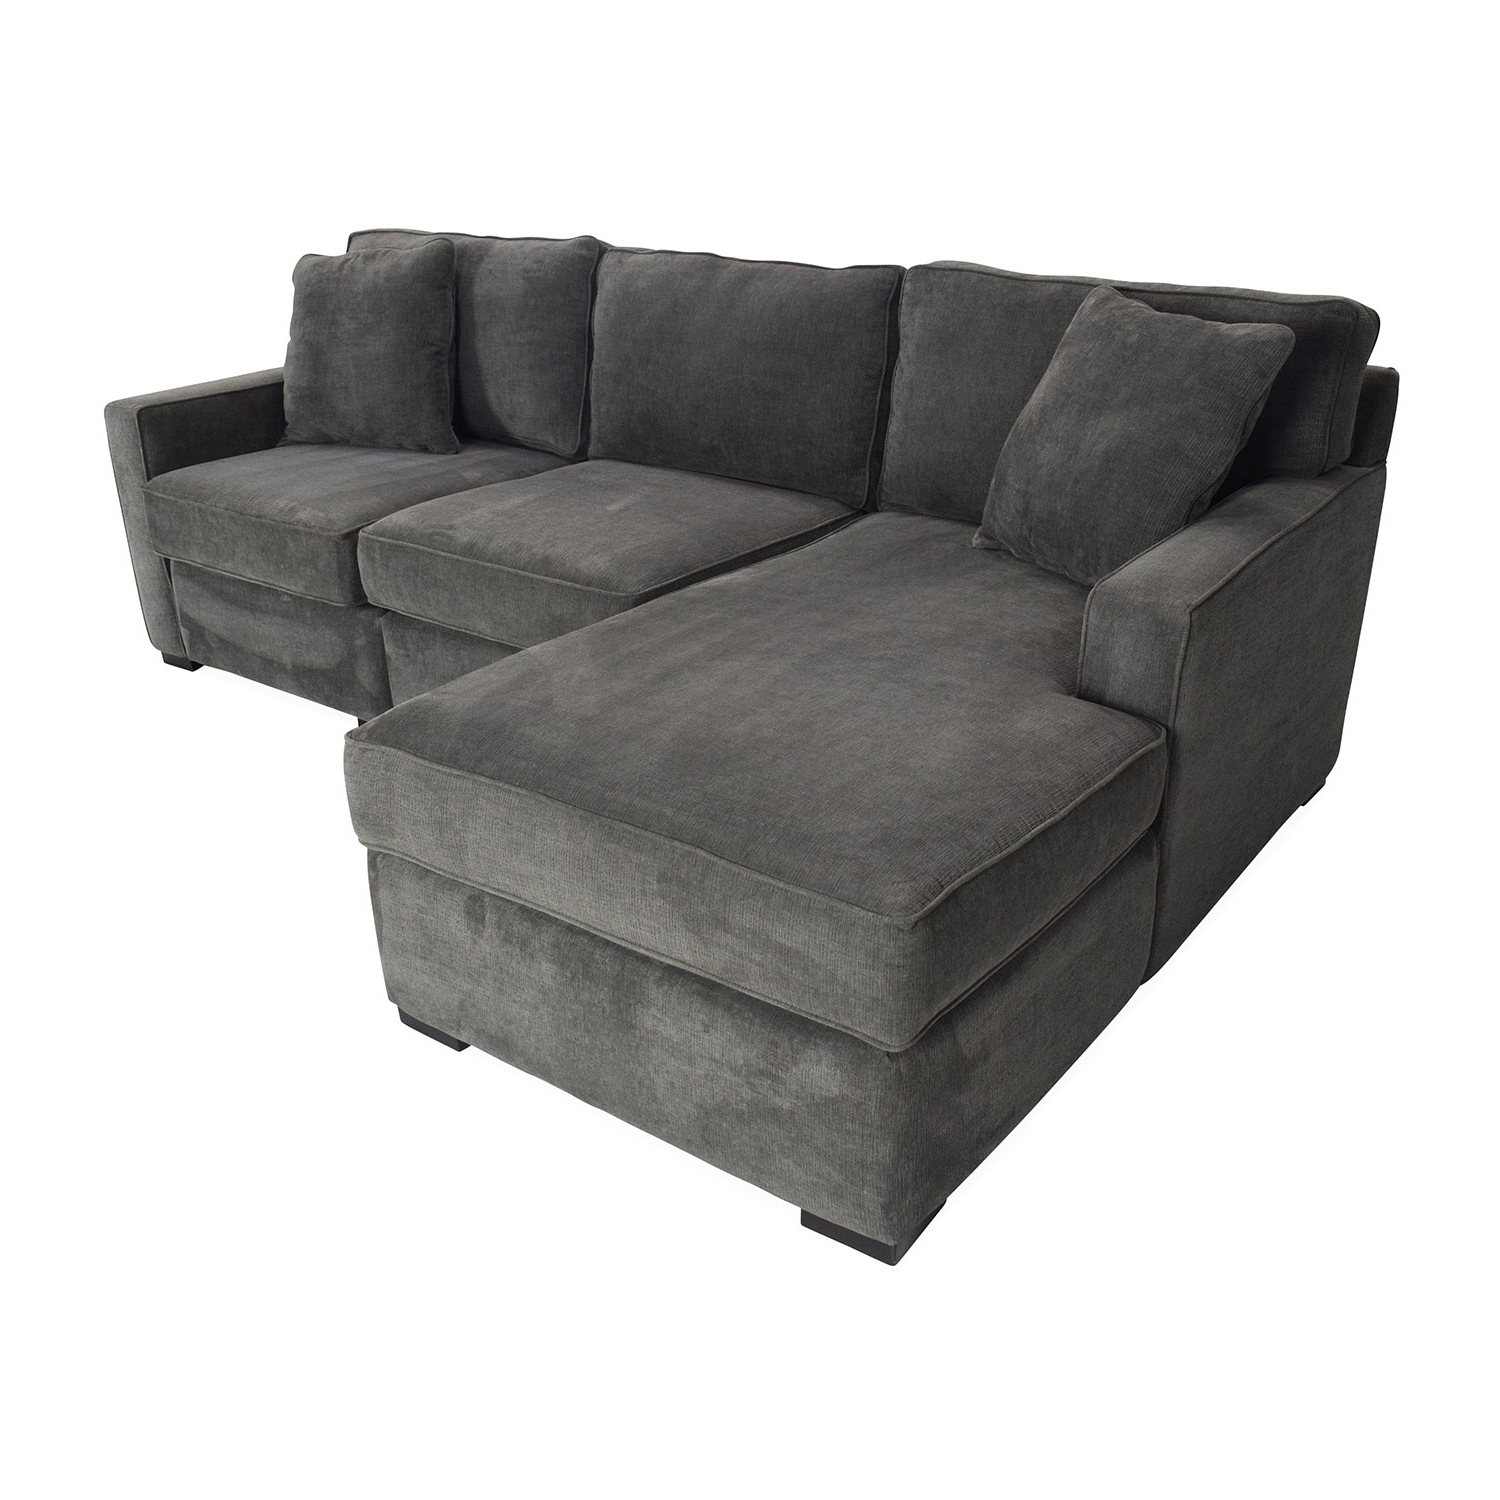 [%51% Off – Macy's Radley Sectional Sofa / Sofas For Best And Newest Macys Sectional Sofas|Macys Sectional Sofas With Preferred 51% Off – Macy's Radley Sectional Sofa / Sofas|2019 Macys Sectional Sofas Throughout 51% Off – Macy's Radley Sectional Sofa / Sofas|Popular 51% Off – Macy's Radley Sectional Sofa / Sofas Regarding Macys Sectional Sofas%] (View 2 of 20)